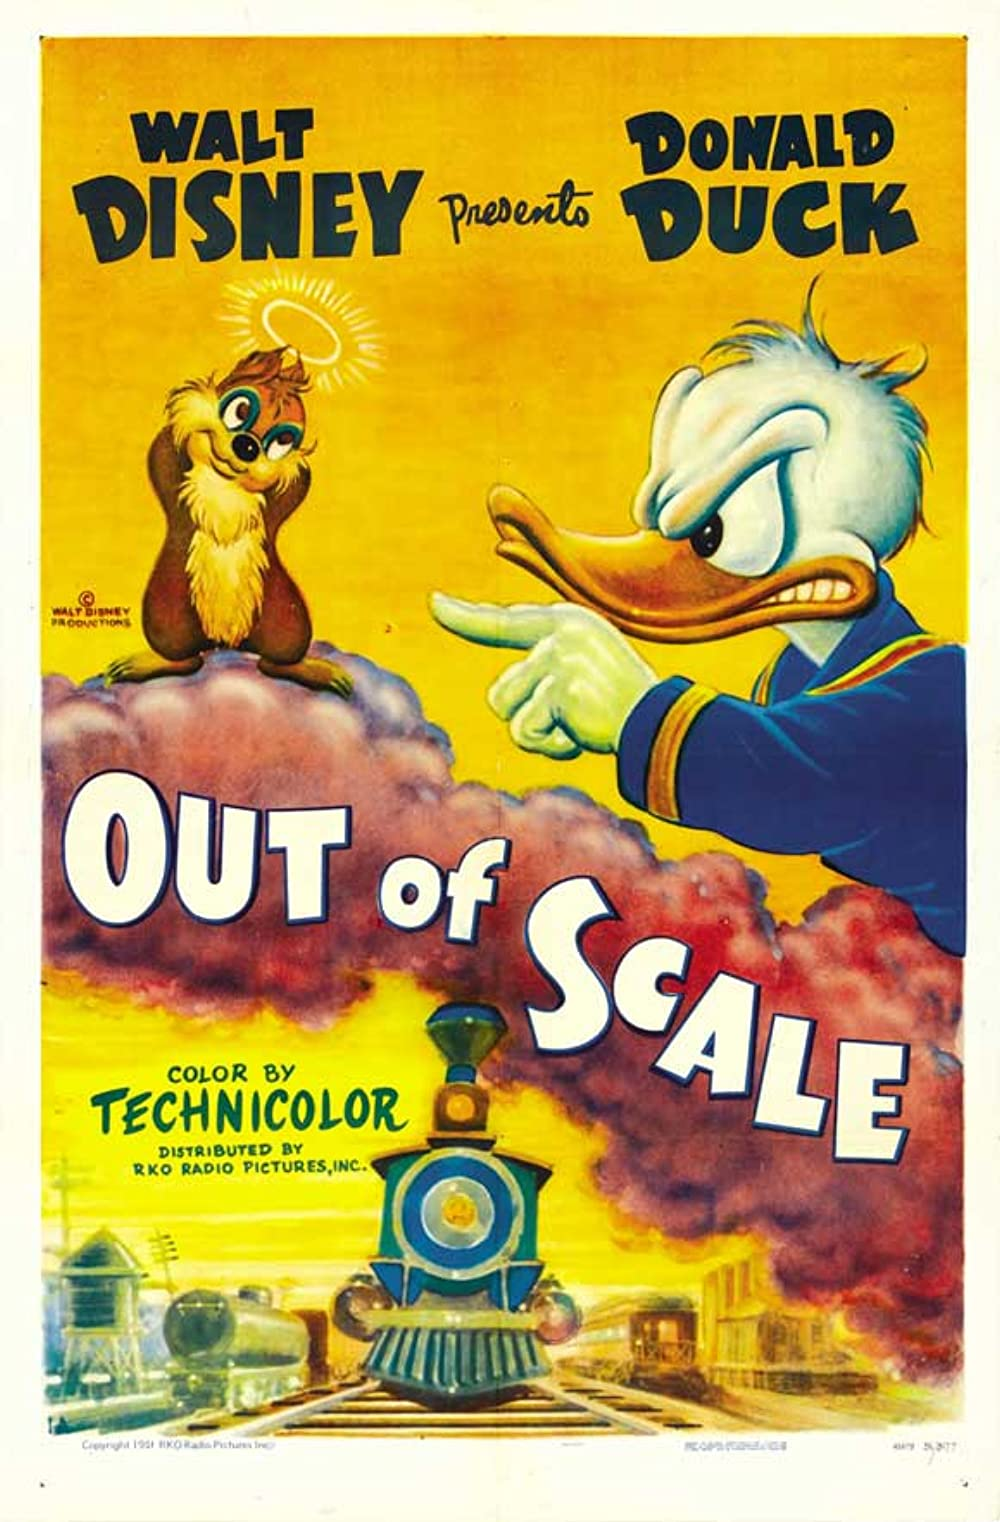 Outofscale poster